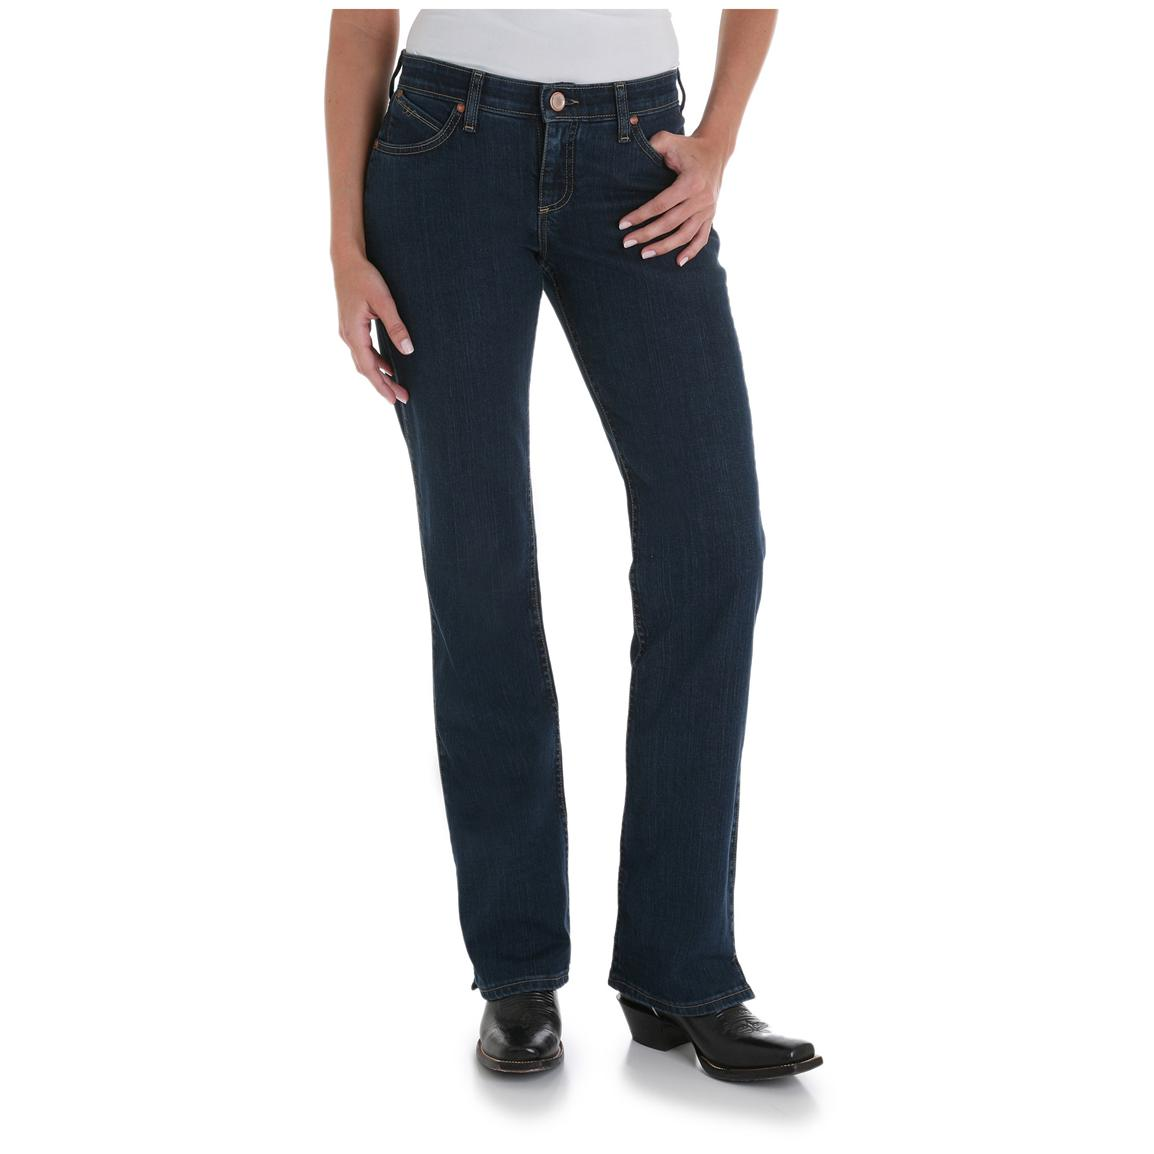 Women's Wrangler® Cowgirl Cut® Ultimate Riding®  Jeans, Q-Baby™ Fit with Vented Boot Cut, Blazin' Buckshot